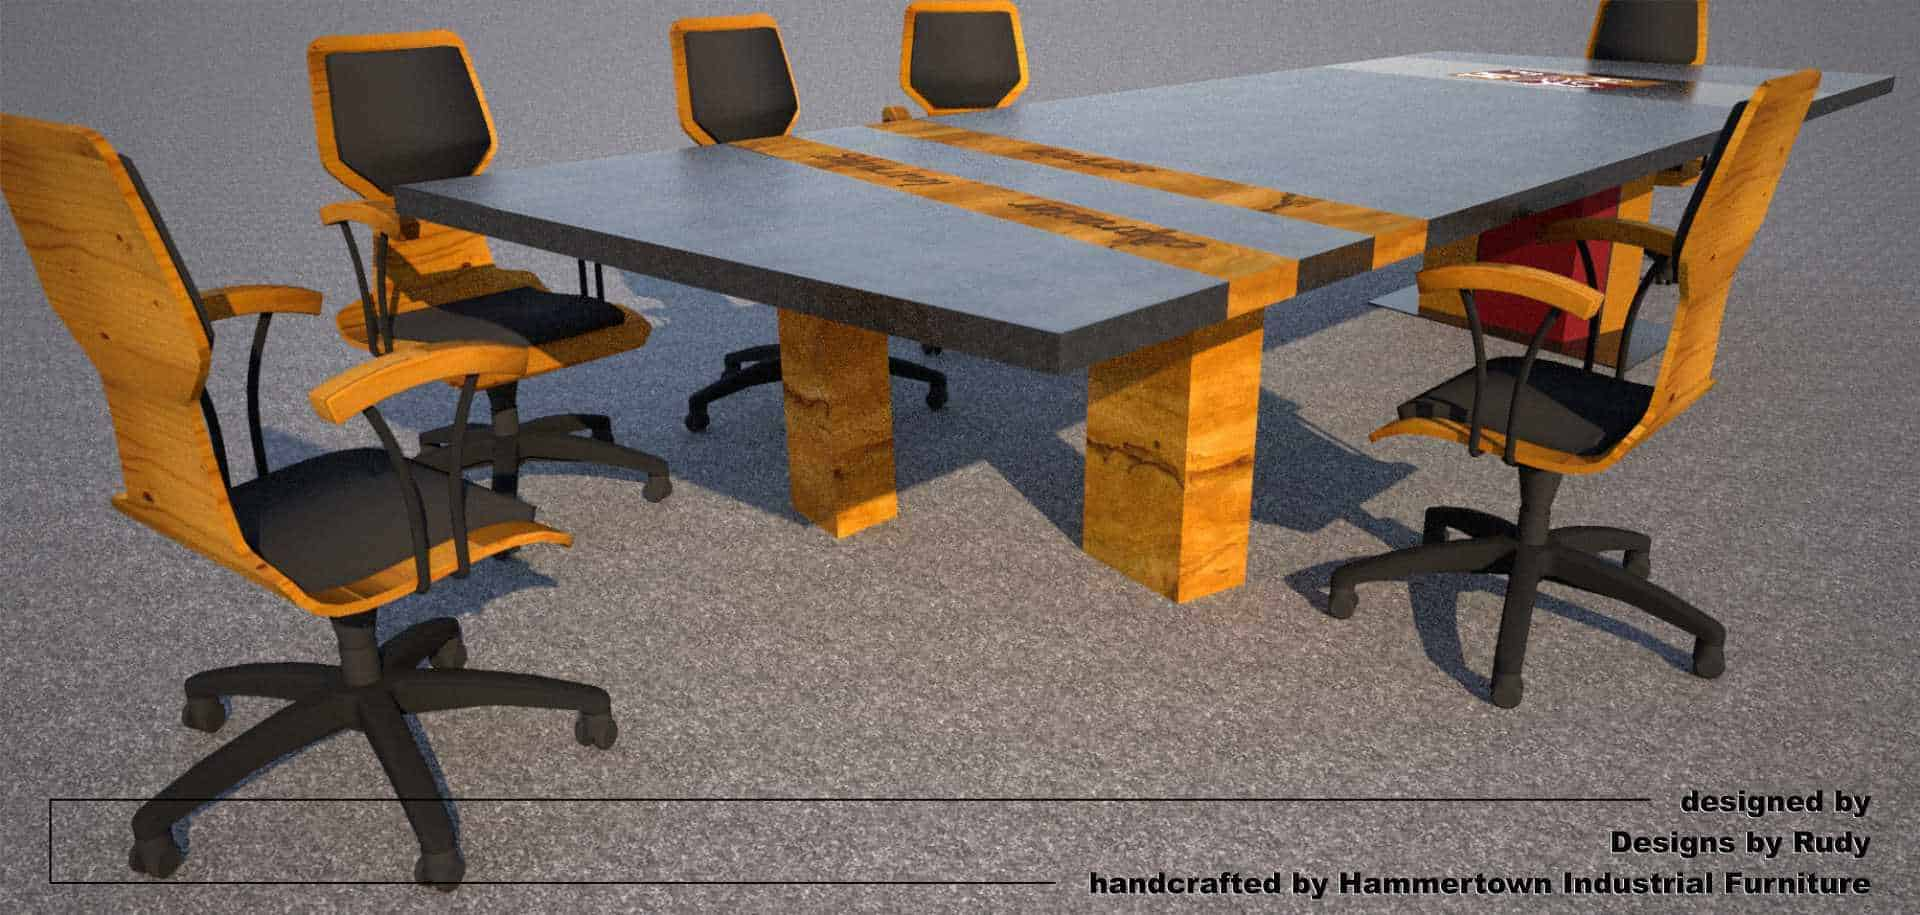 Concrete Conference table for HDCH, designed by Designs by Rudy, wooden legs side view